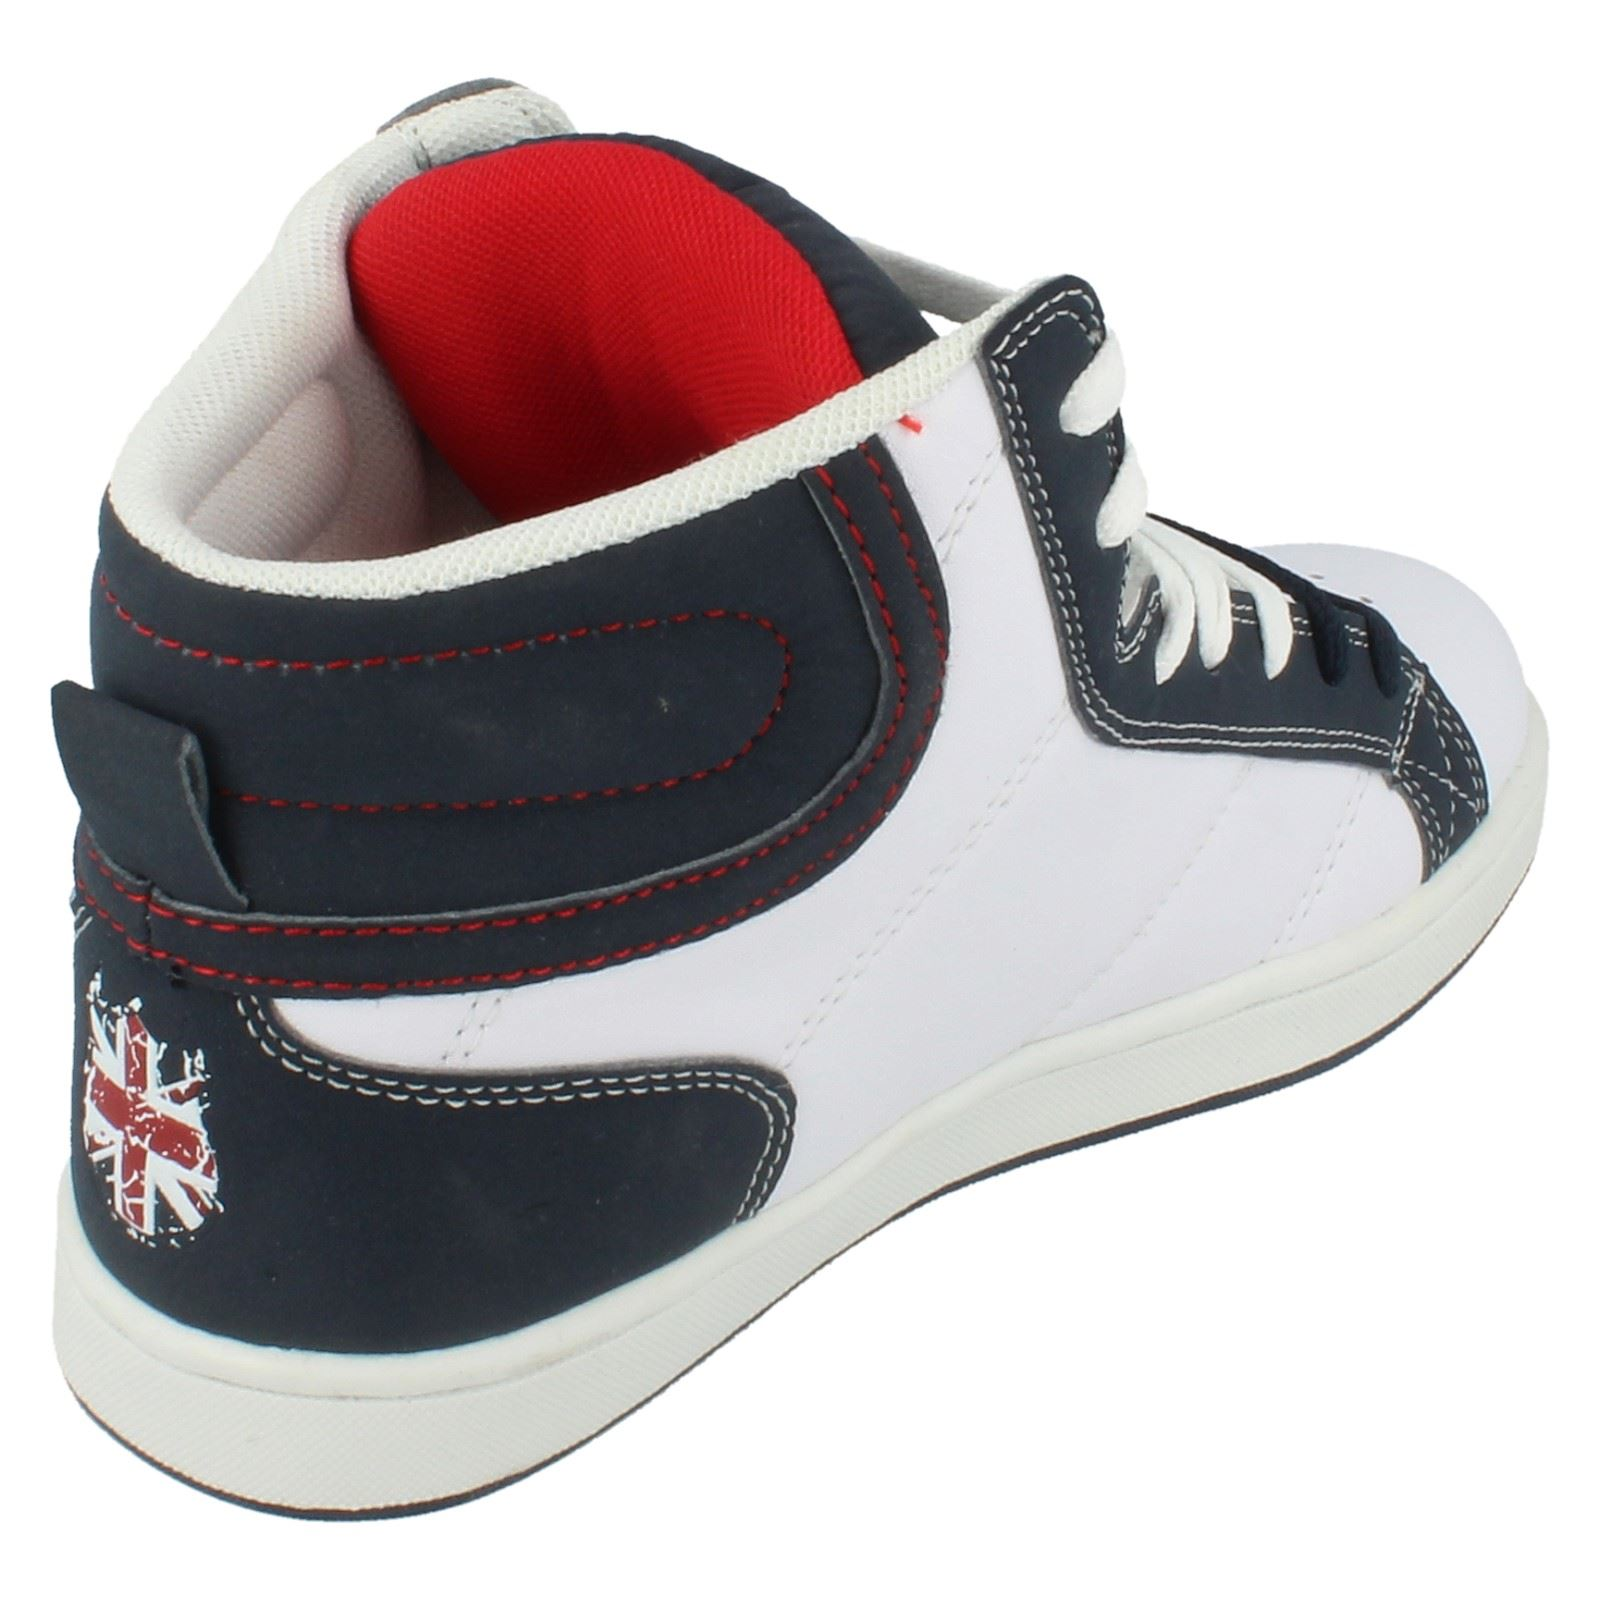 Boys Mercury Hi-Top Trainers - The Style Torch - 08015 ~ N